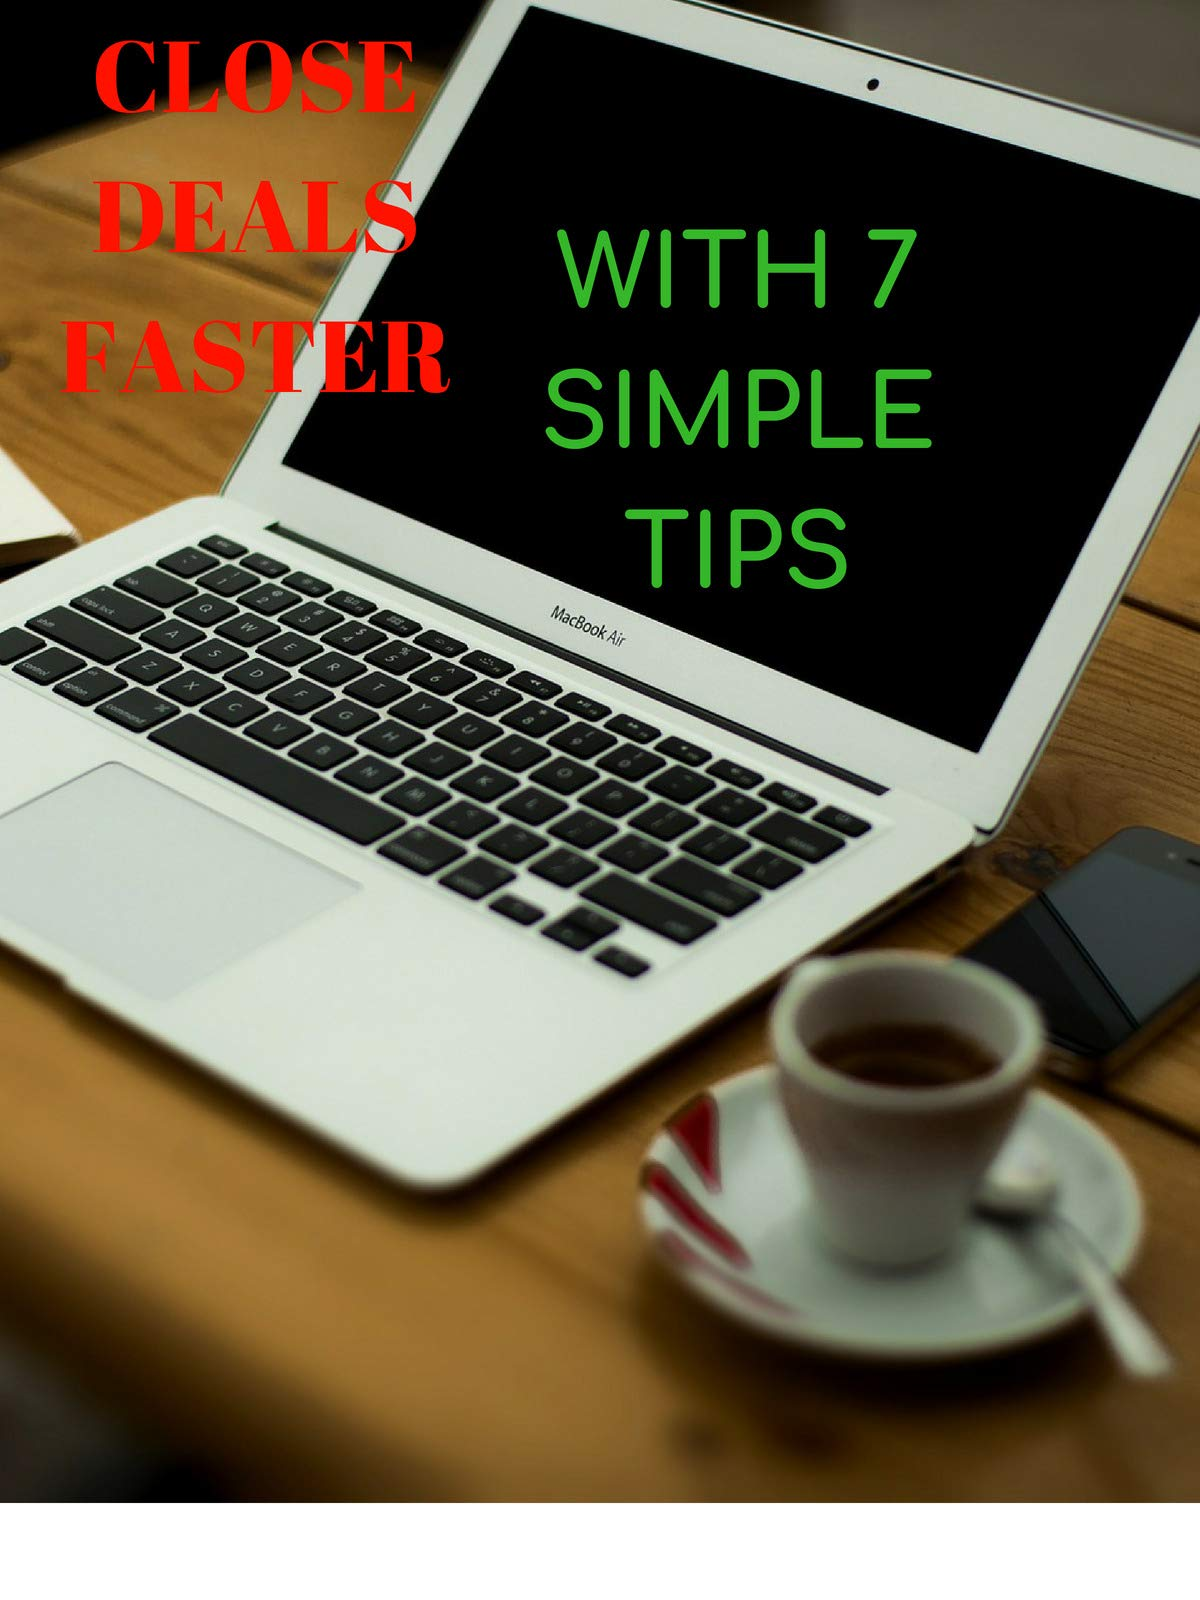 Close deals faster with 7 simple tips.